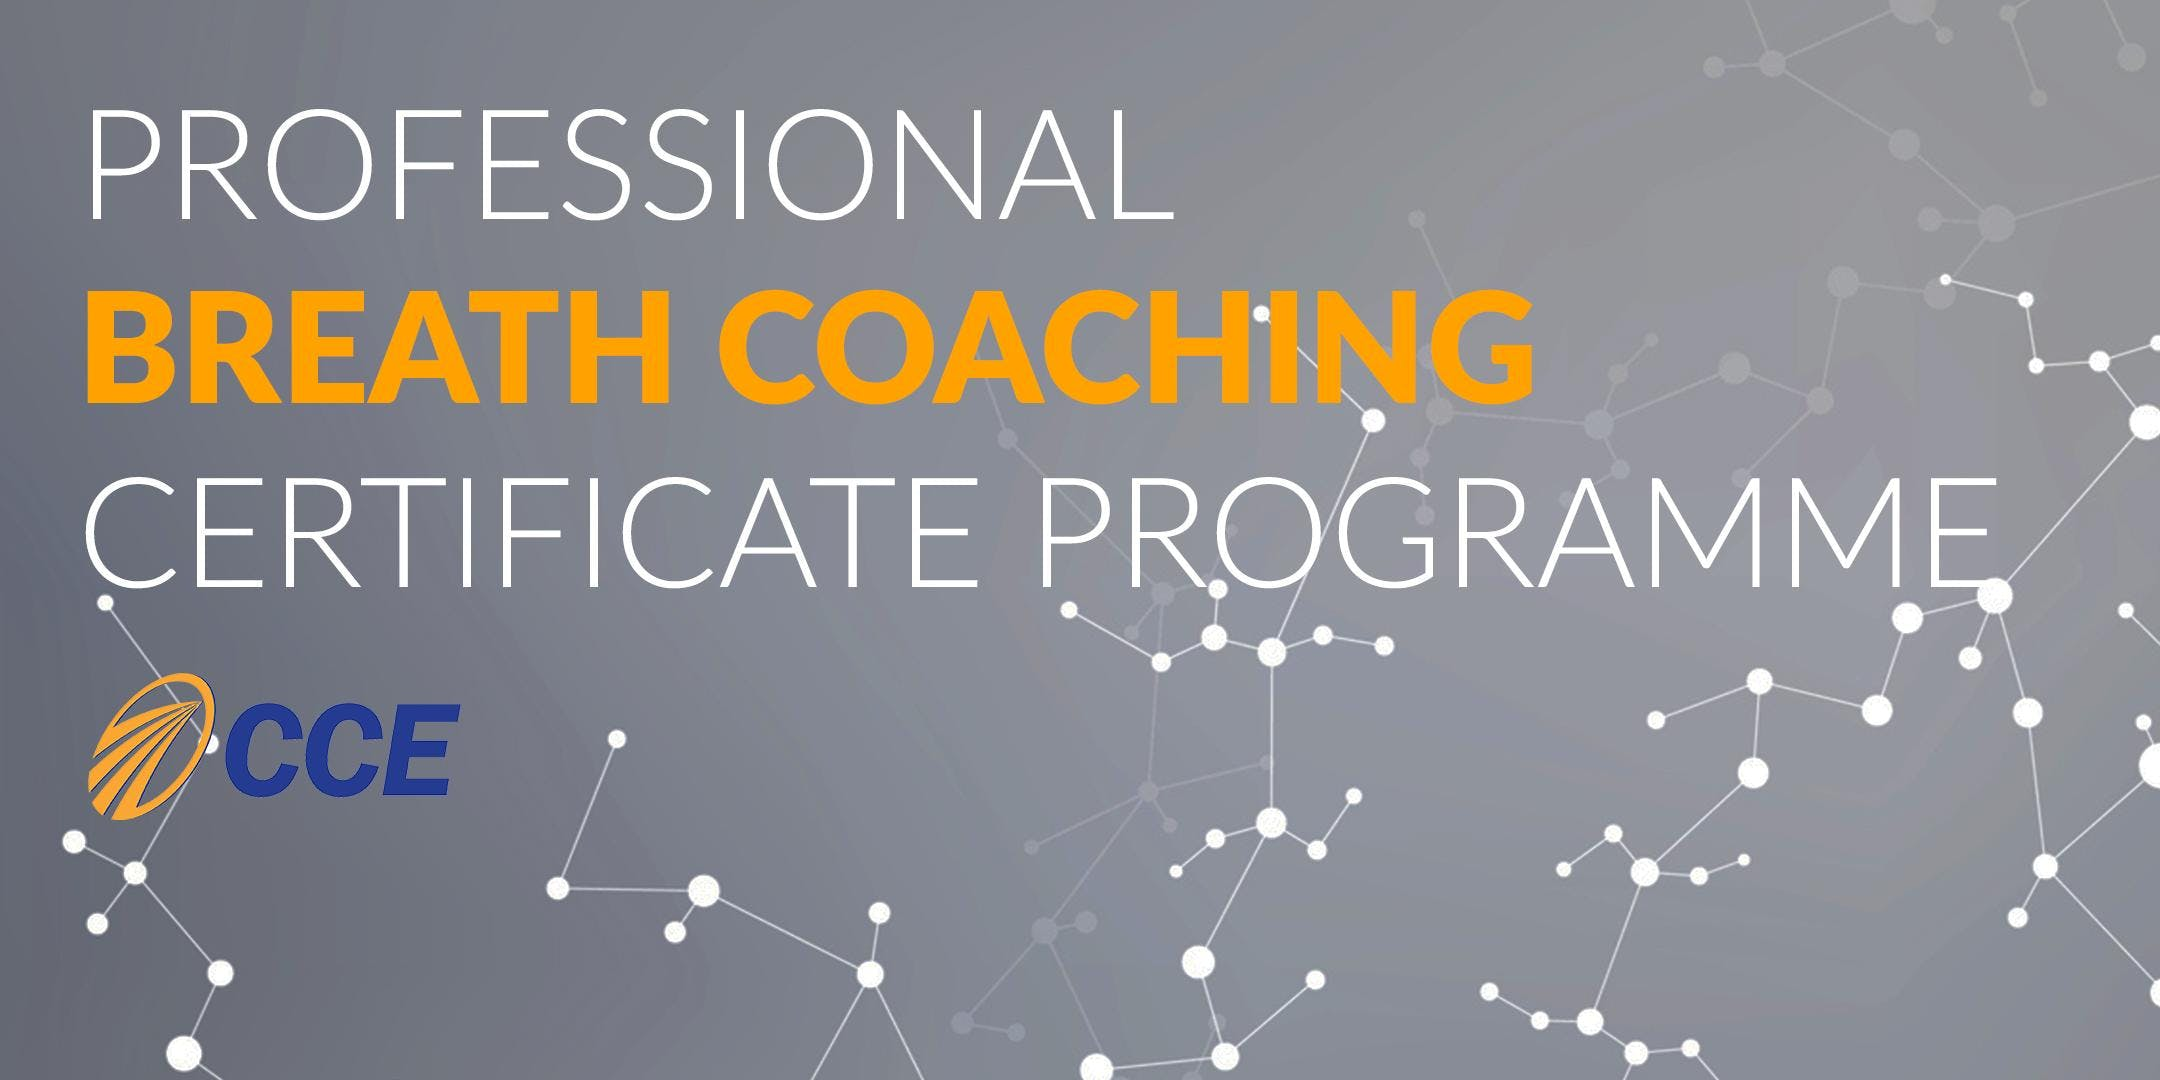 Professional Breath Coaching Certificate Programme Part 1-2-3 in London